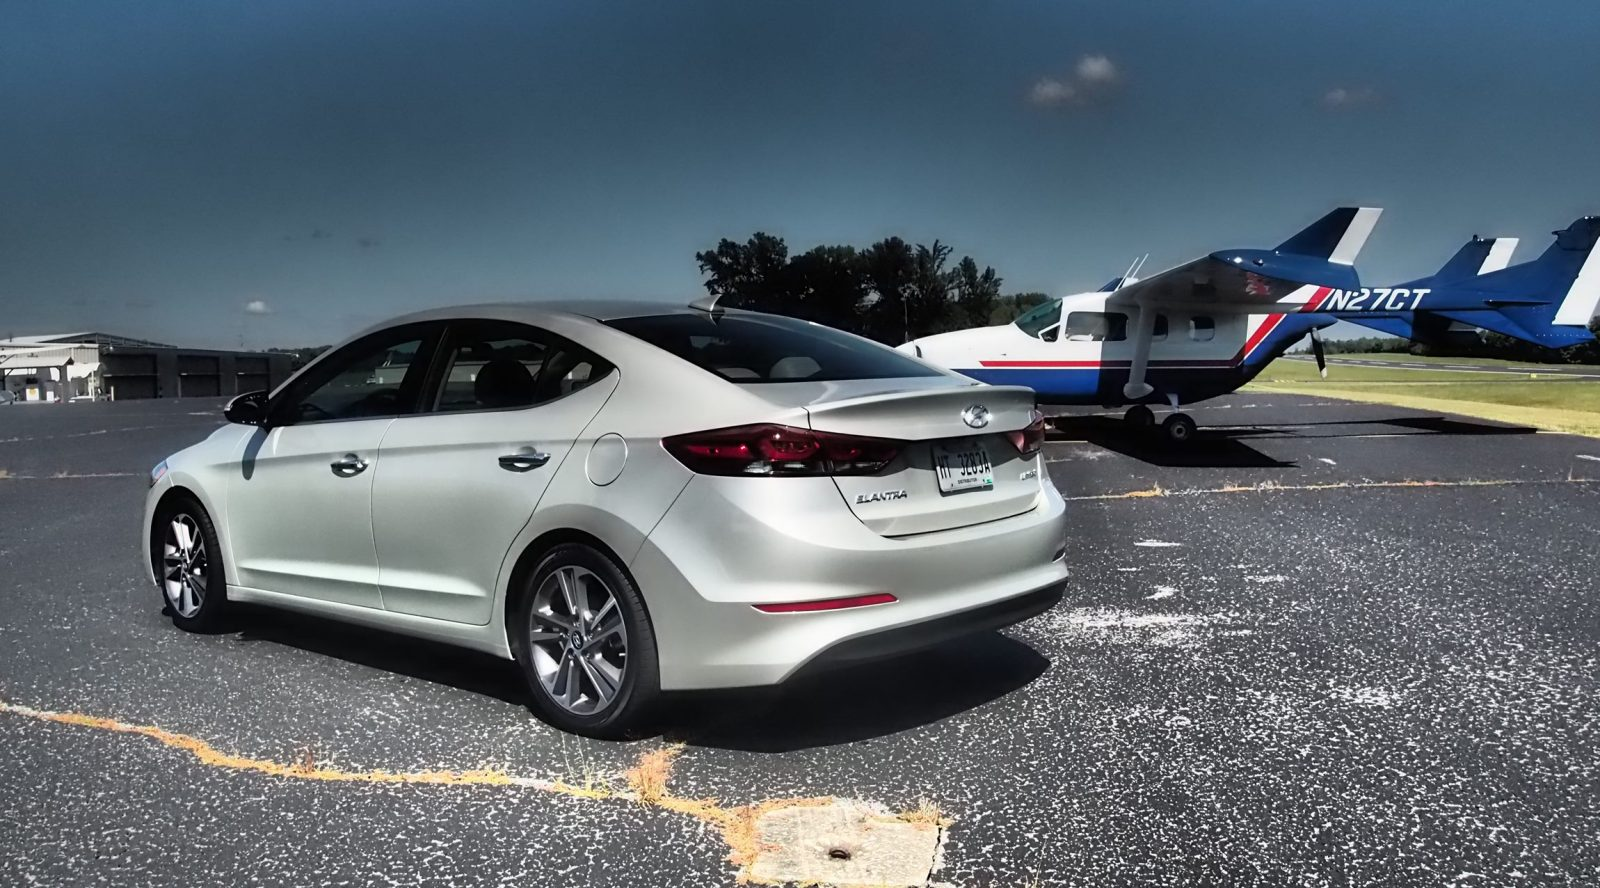 2017 hyundai elantra limited road test review by lyndon johnson car revs. Black Bedroom Furniture Sets. Home Design Ideas